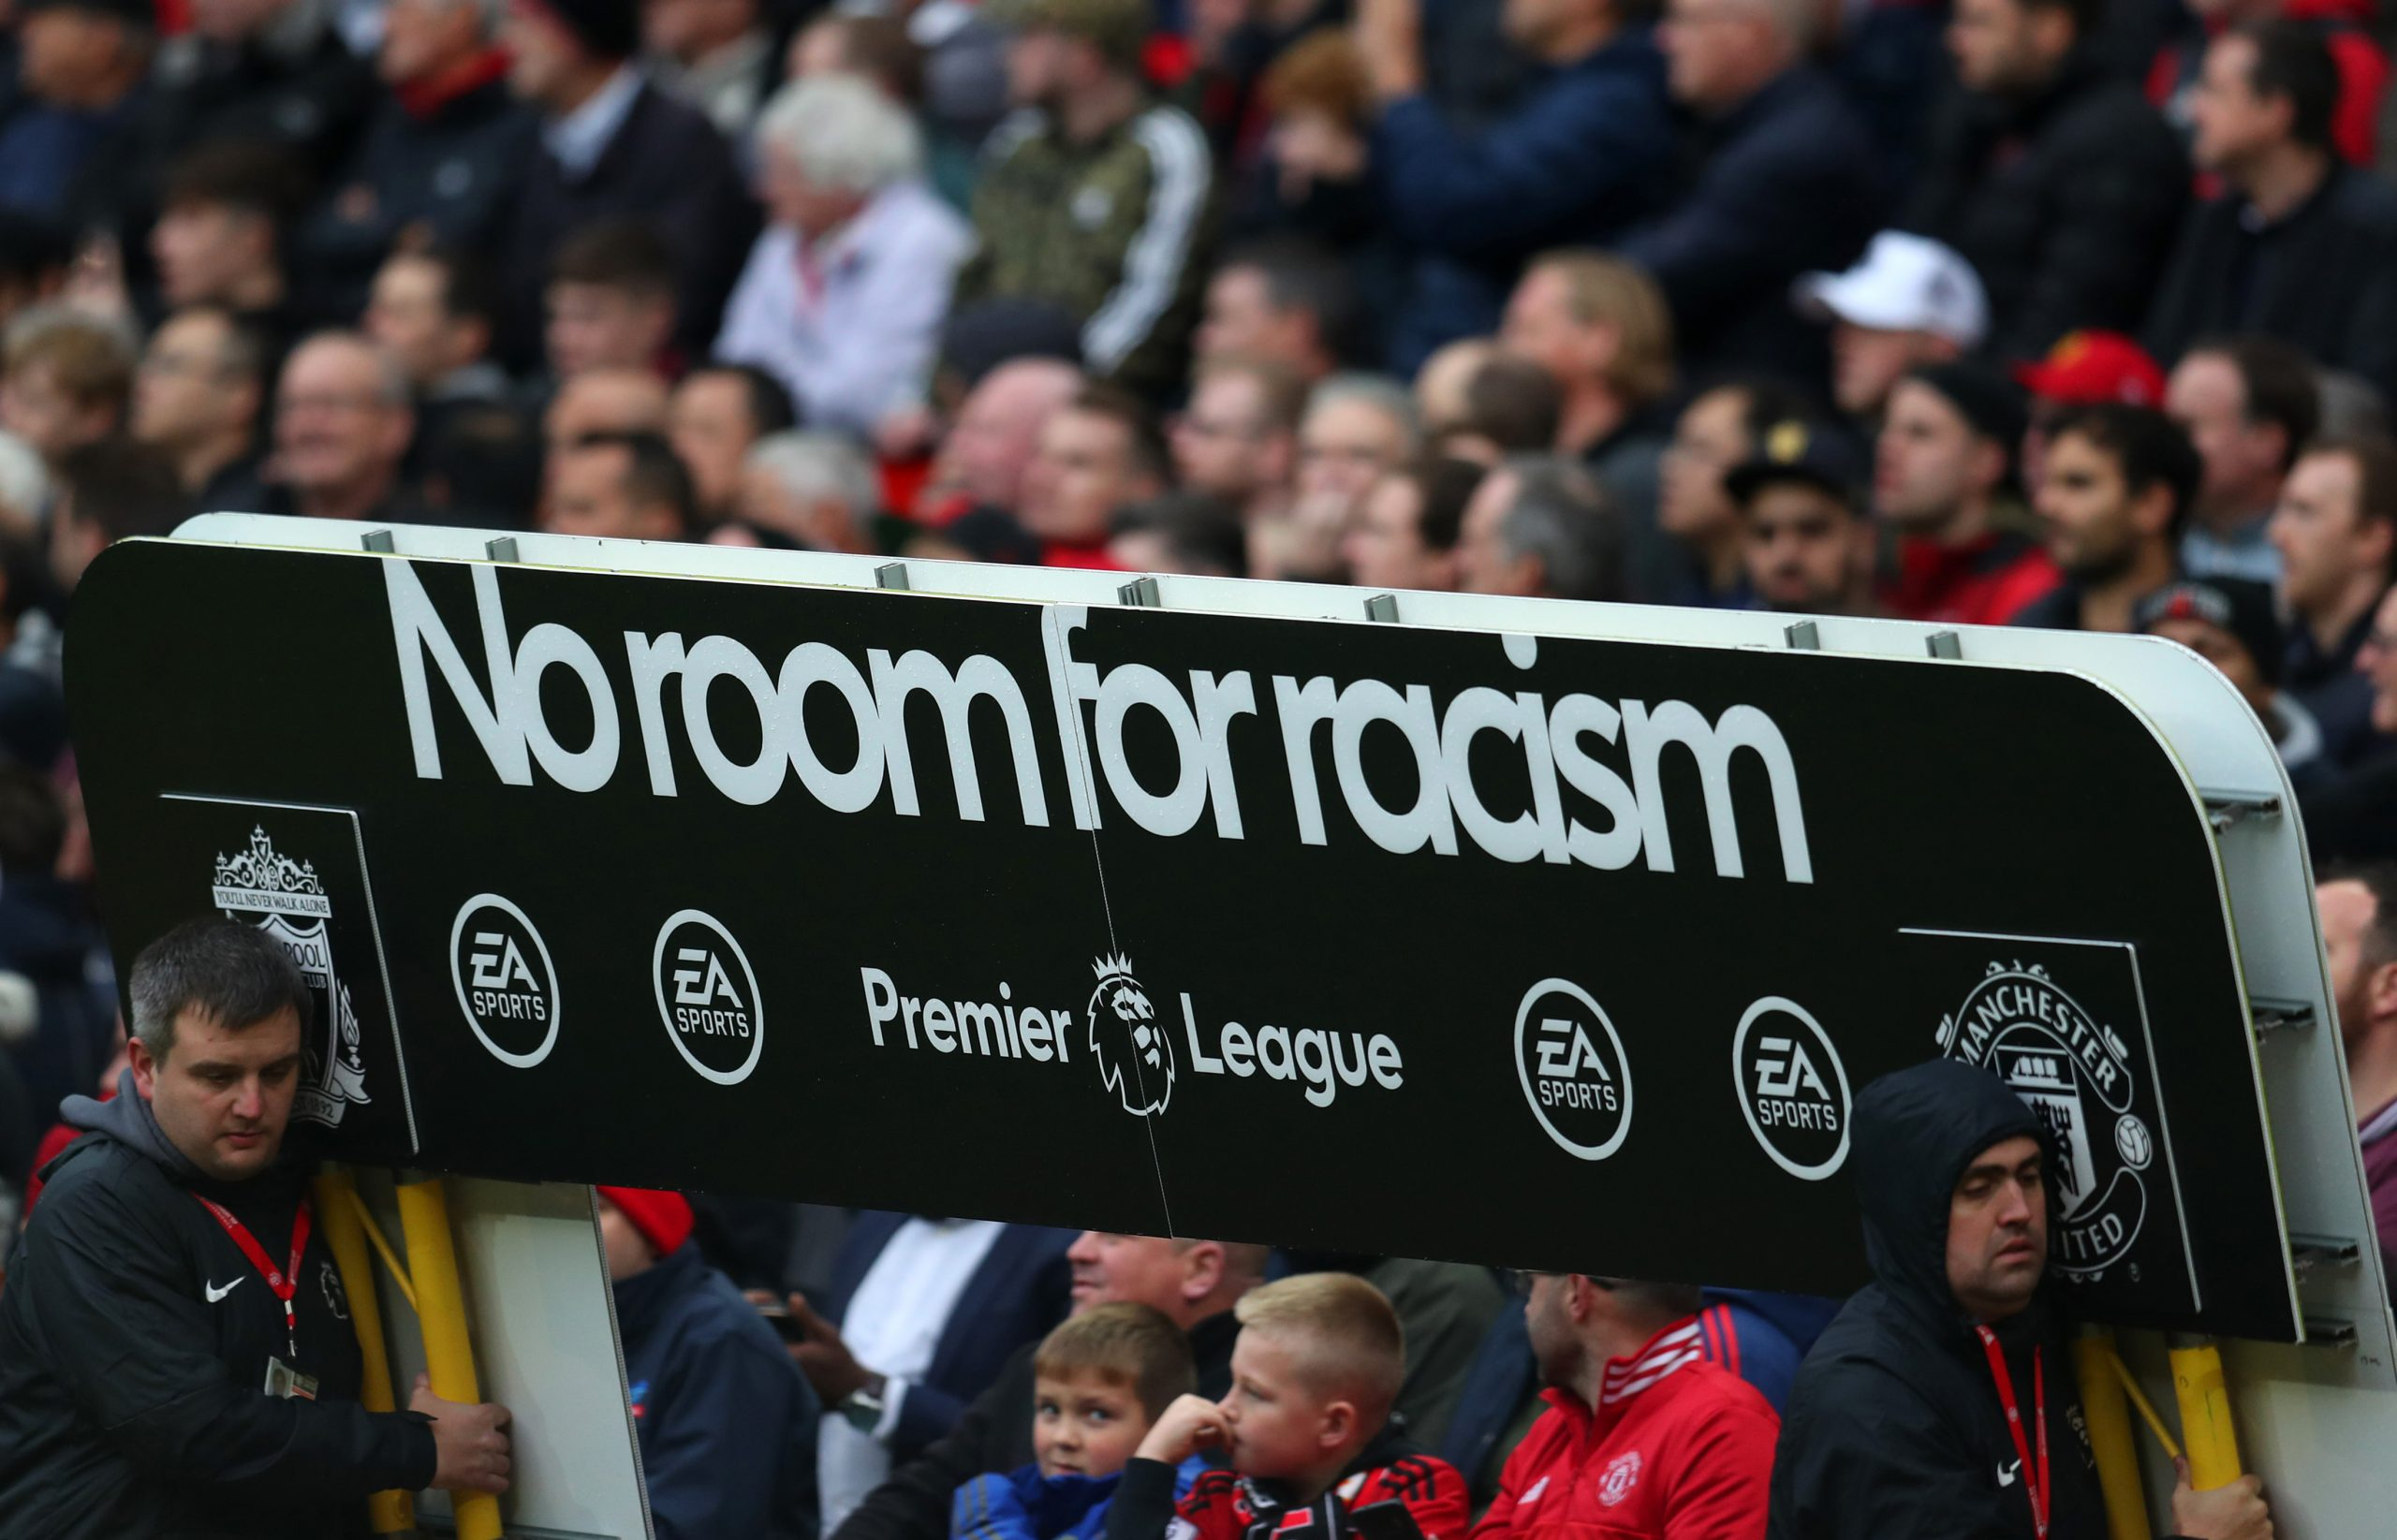 Manchester United, Manchester City, Liverpool, and Everton stand together to combat racism in football for Hate Crime Awareness week. (GETTY Images)